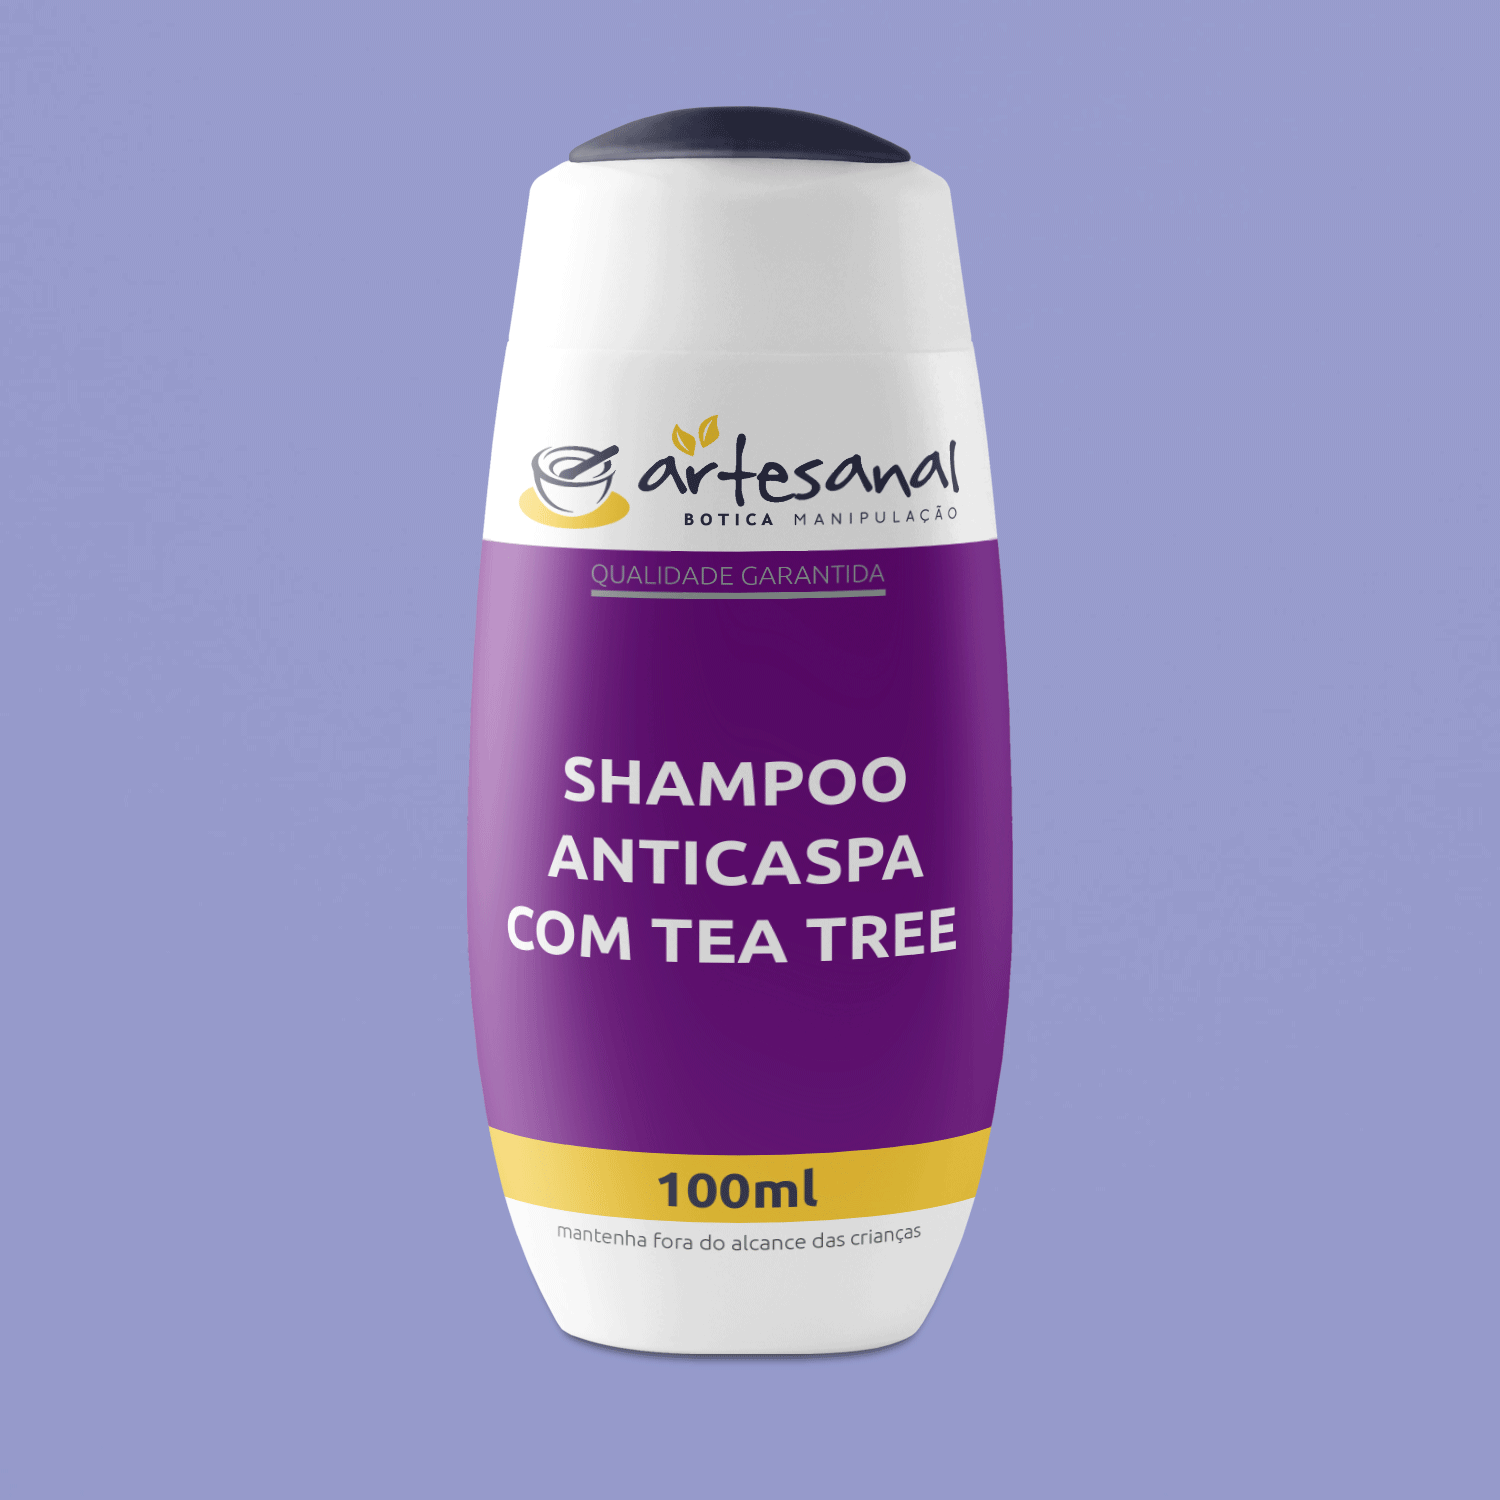 Shampoo Anticaspa com Tea Tree 100ml